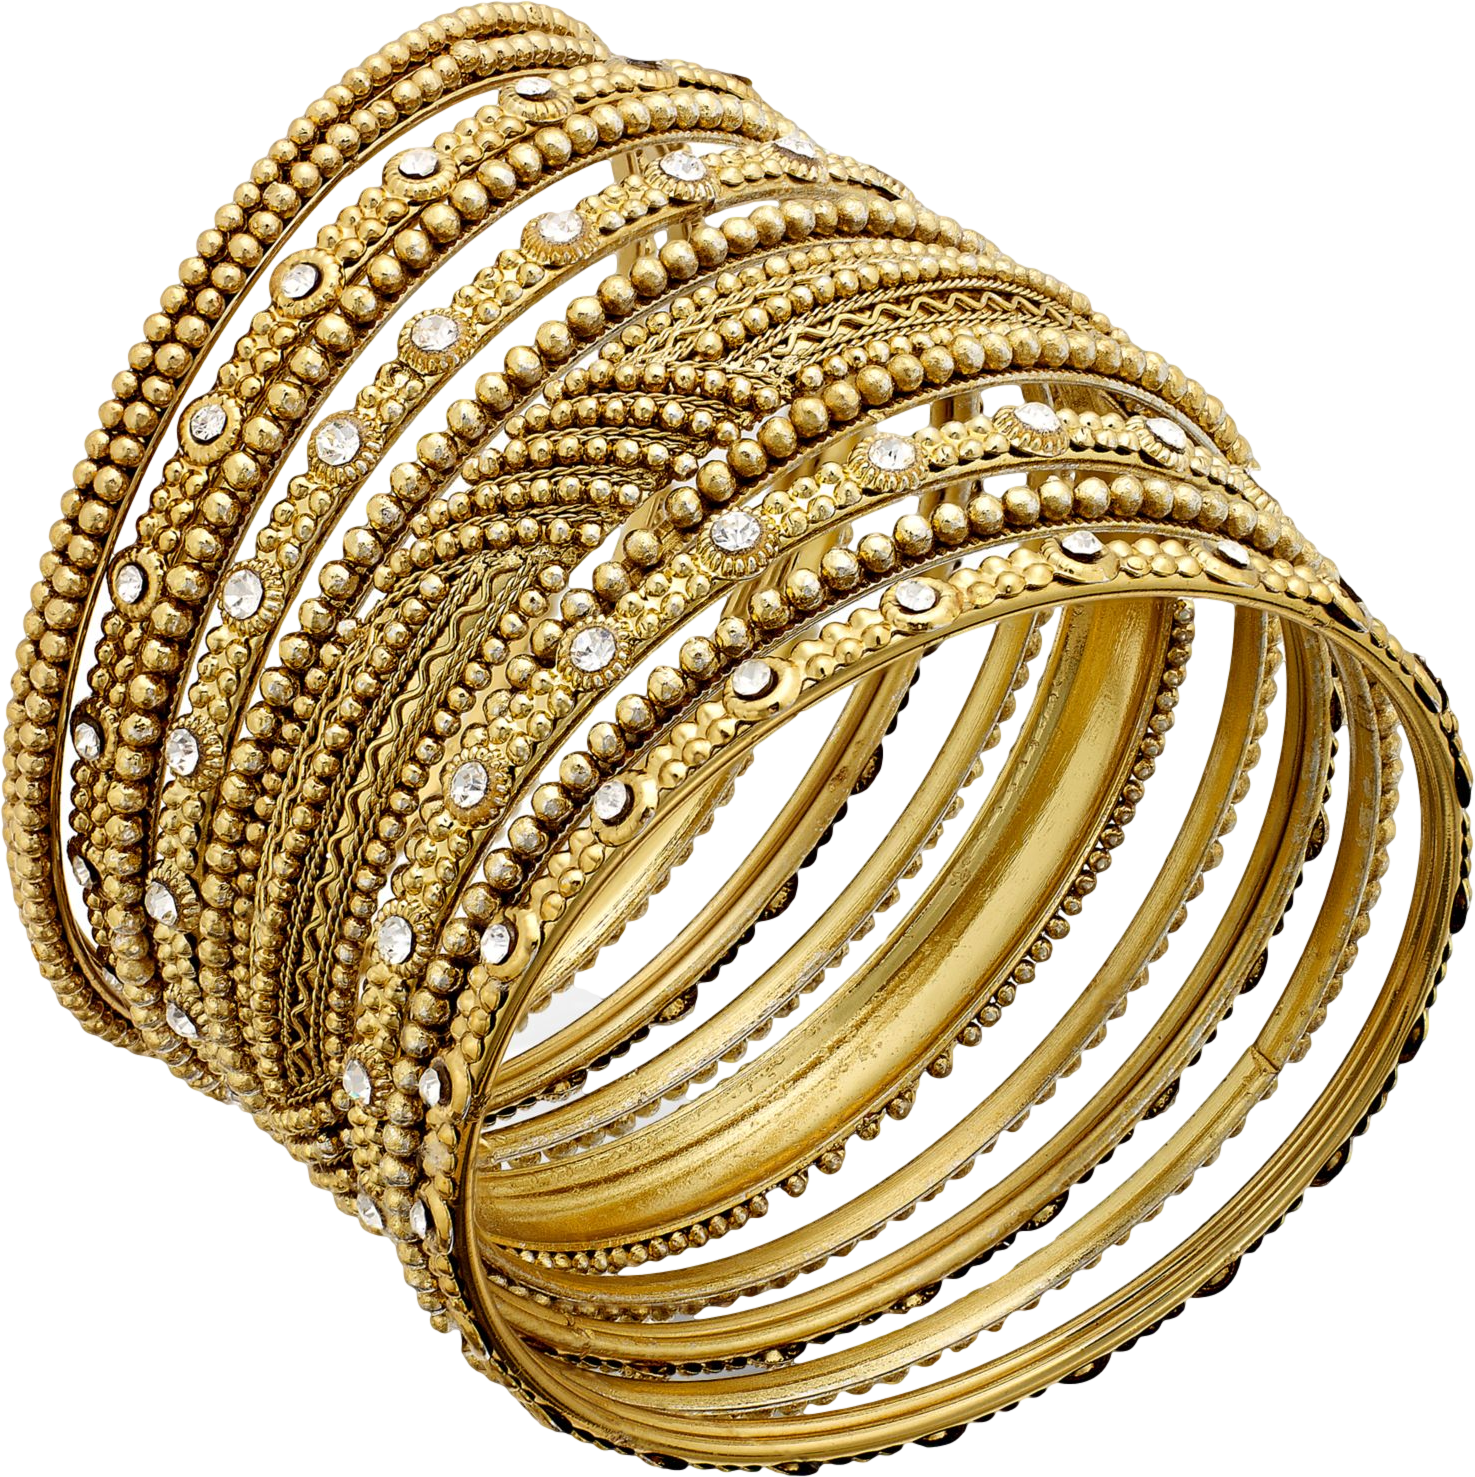 Bar III Gold-Tone Crystal-Accented Textured Bangle Bracelet Set